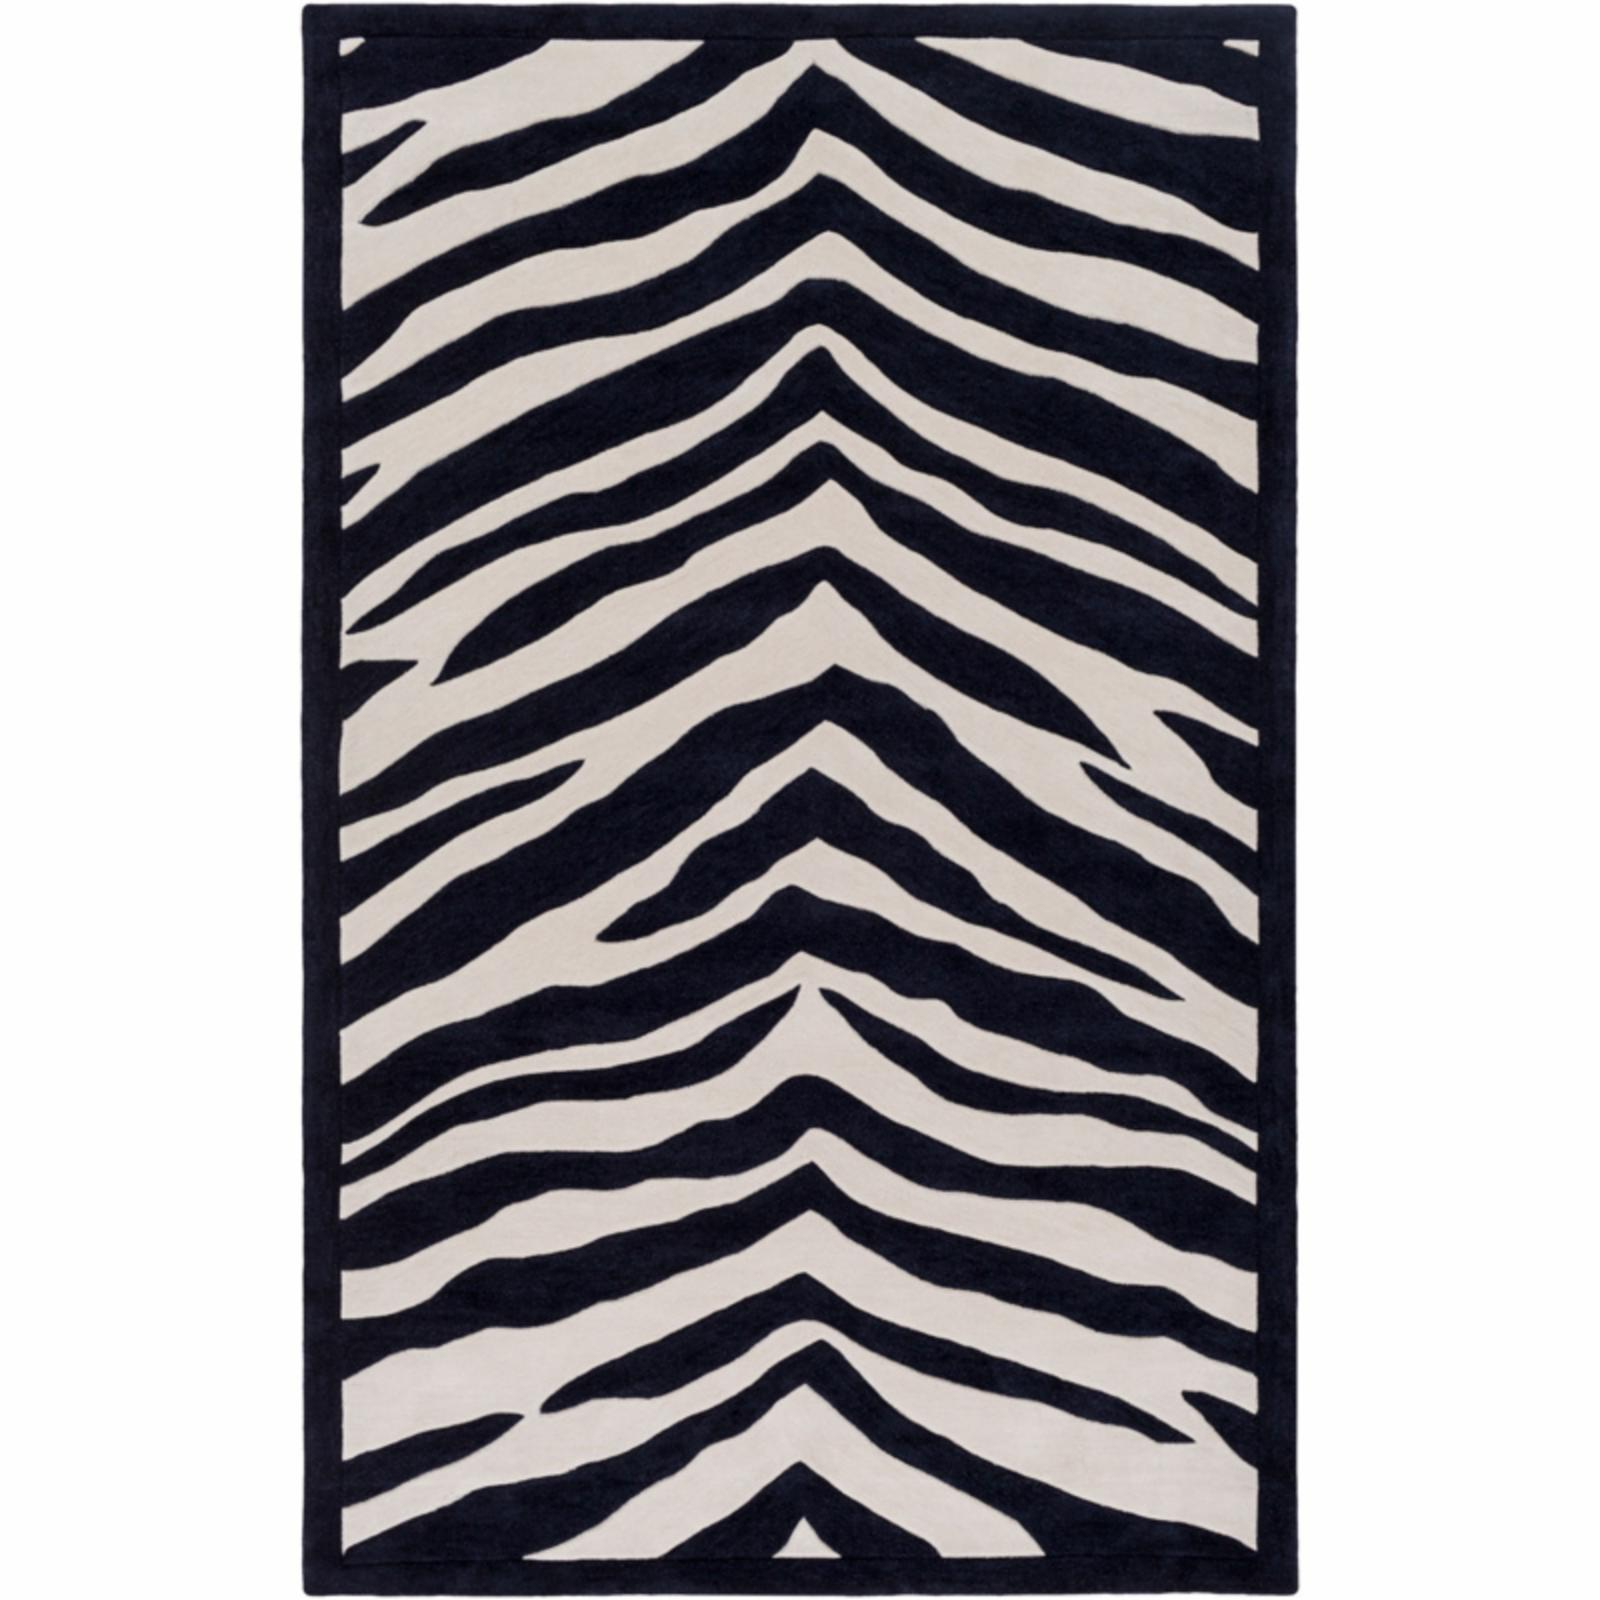 SURYA Leap Frog LPF800 Indoor Area Rug Black / Ivory - LP...